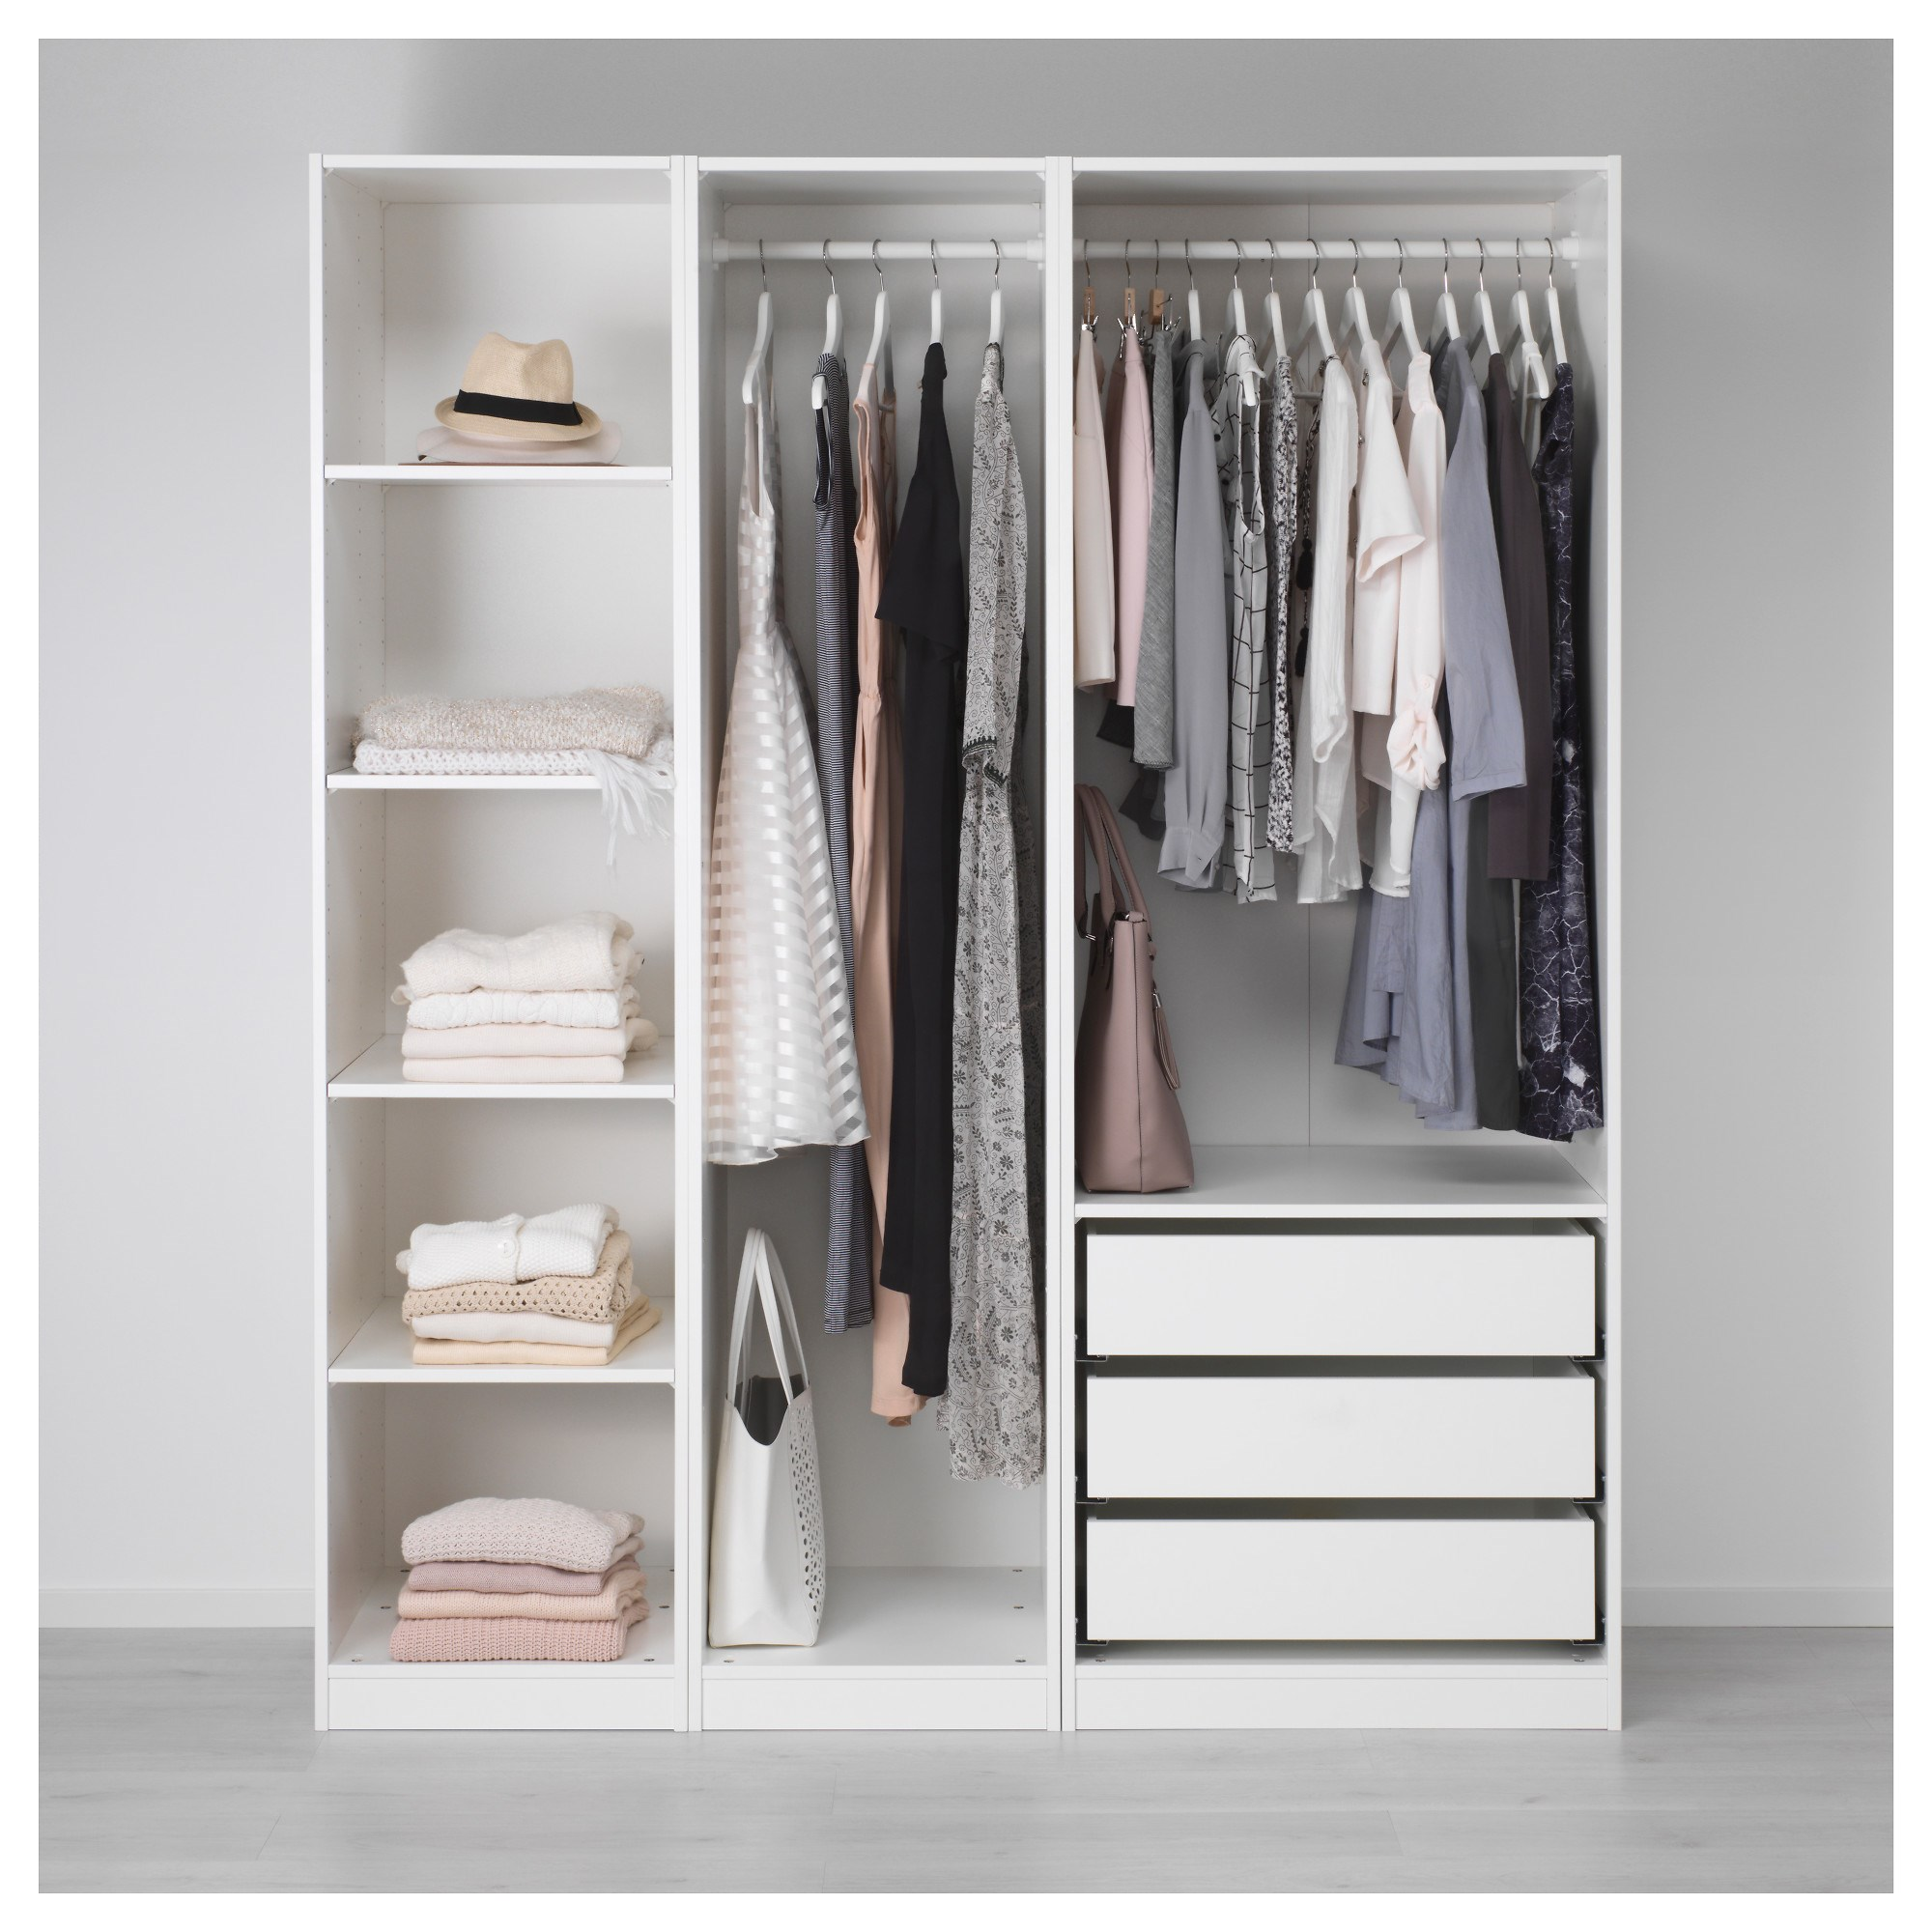 popular custom blogger the wardrobe san review pax ikea what closet by wtfab fab francisco lifestyle